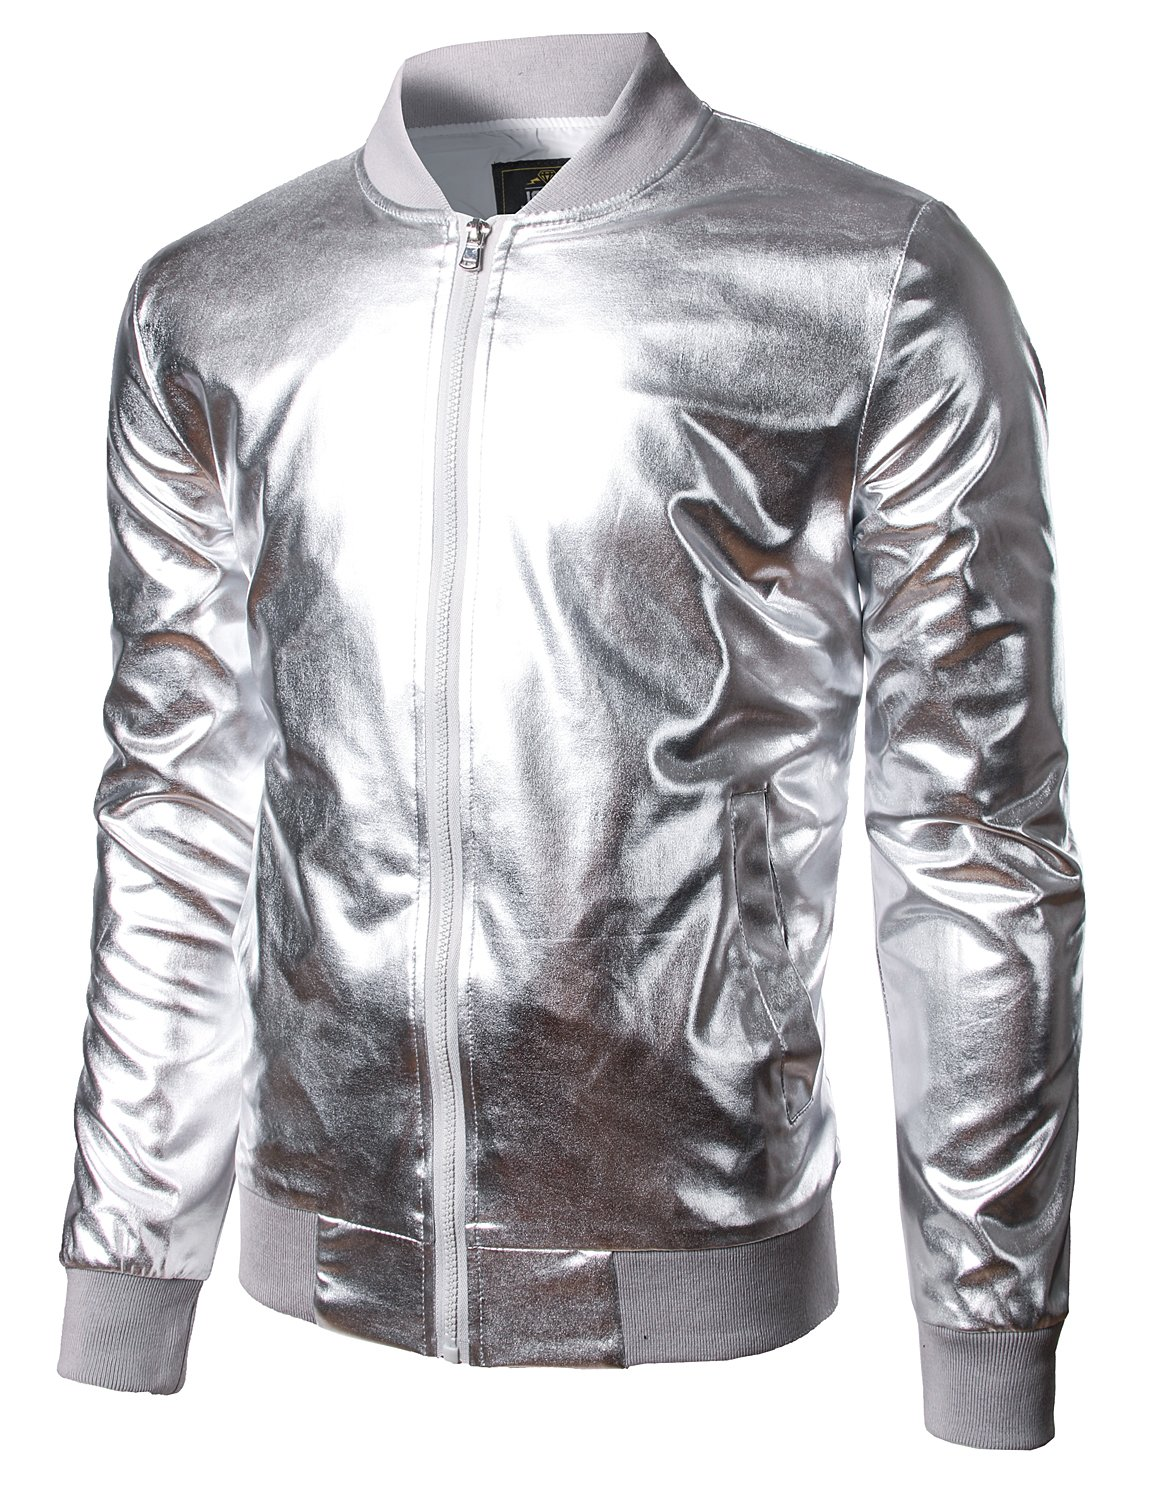 JOGAL Mens Metallic Nightclub Styles Zip up Varsity Baseball Bomber Jacket X-Large Silver by JOGAL